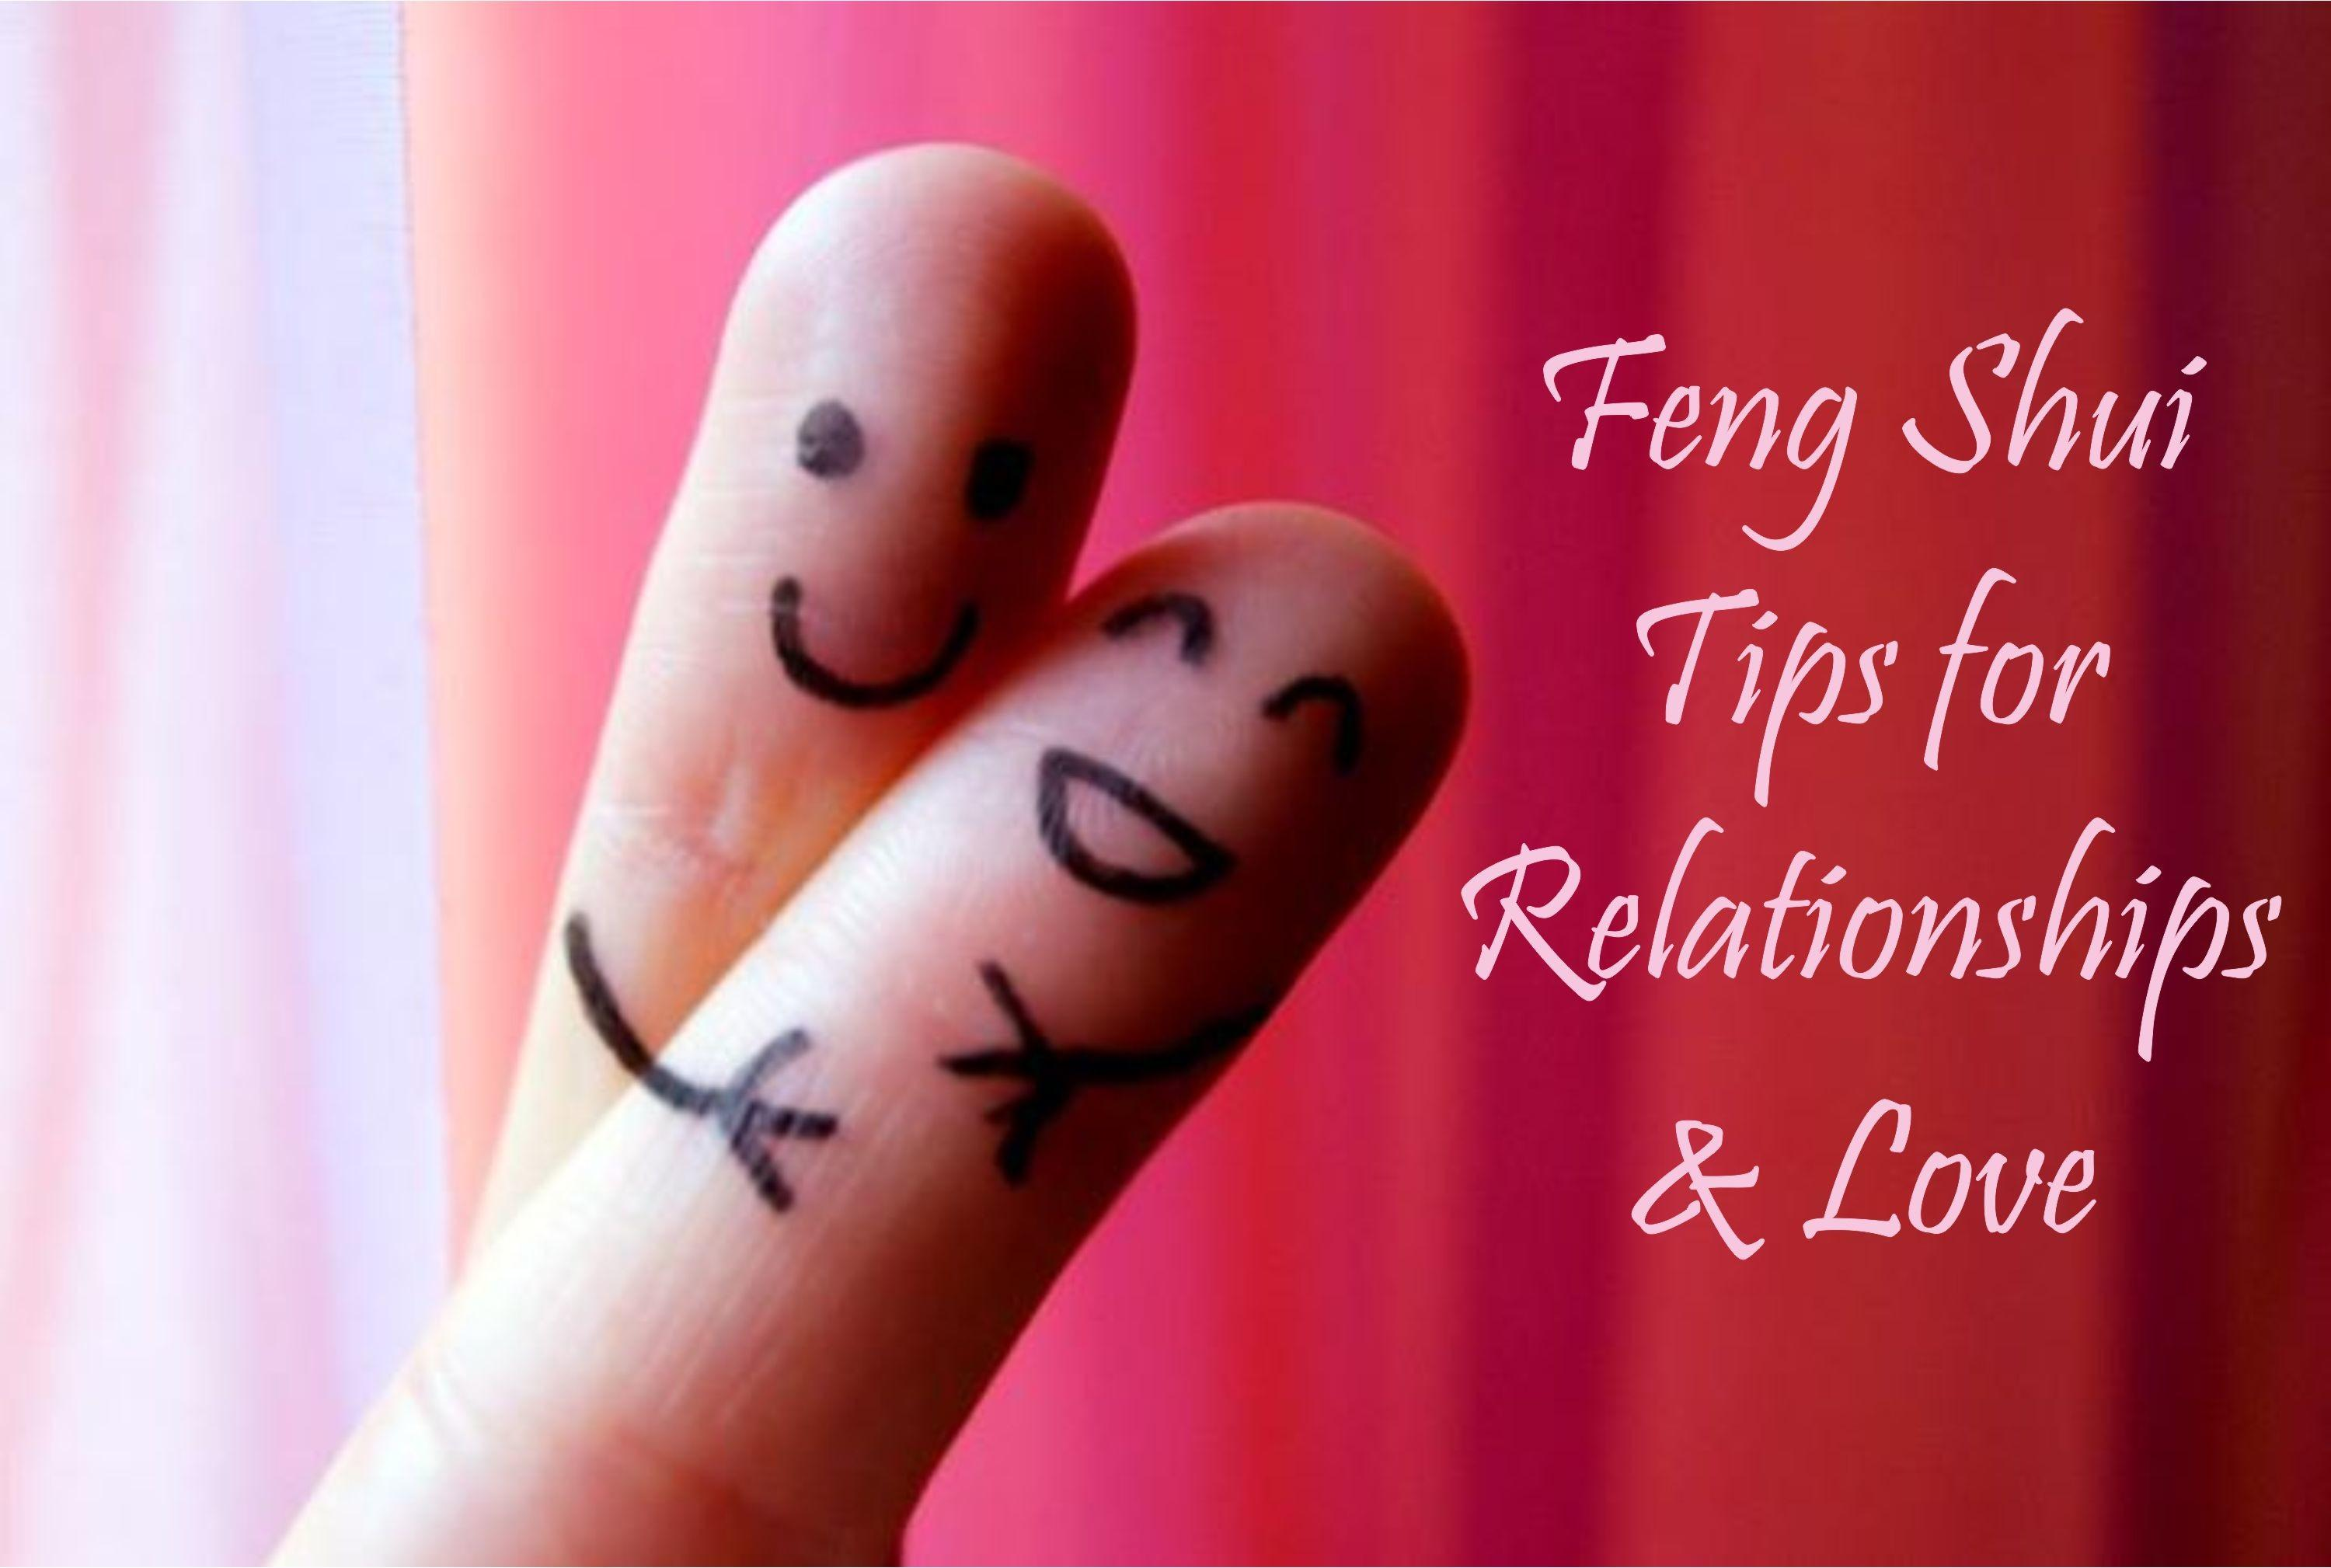 Feng Shui Tips Relationships Alternate